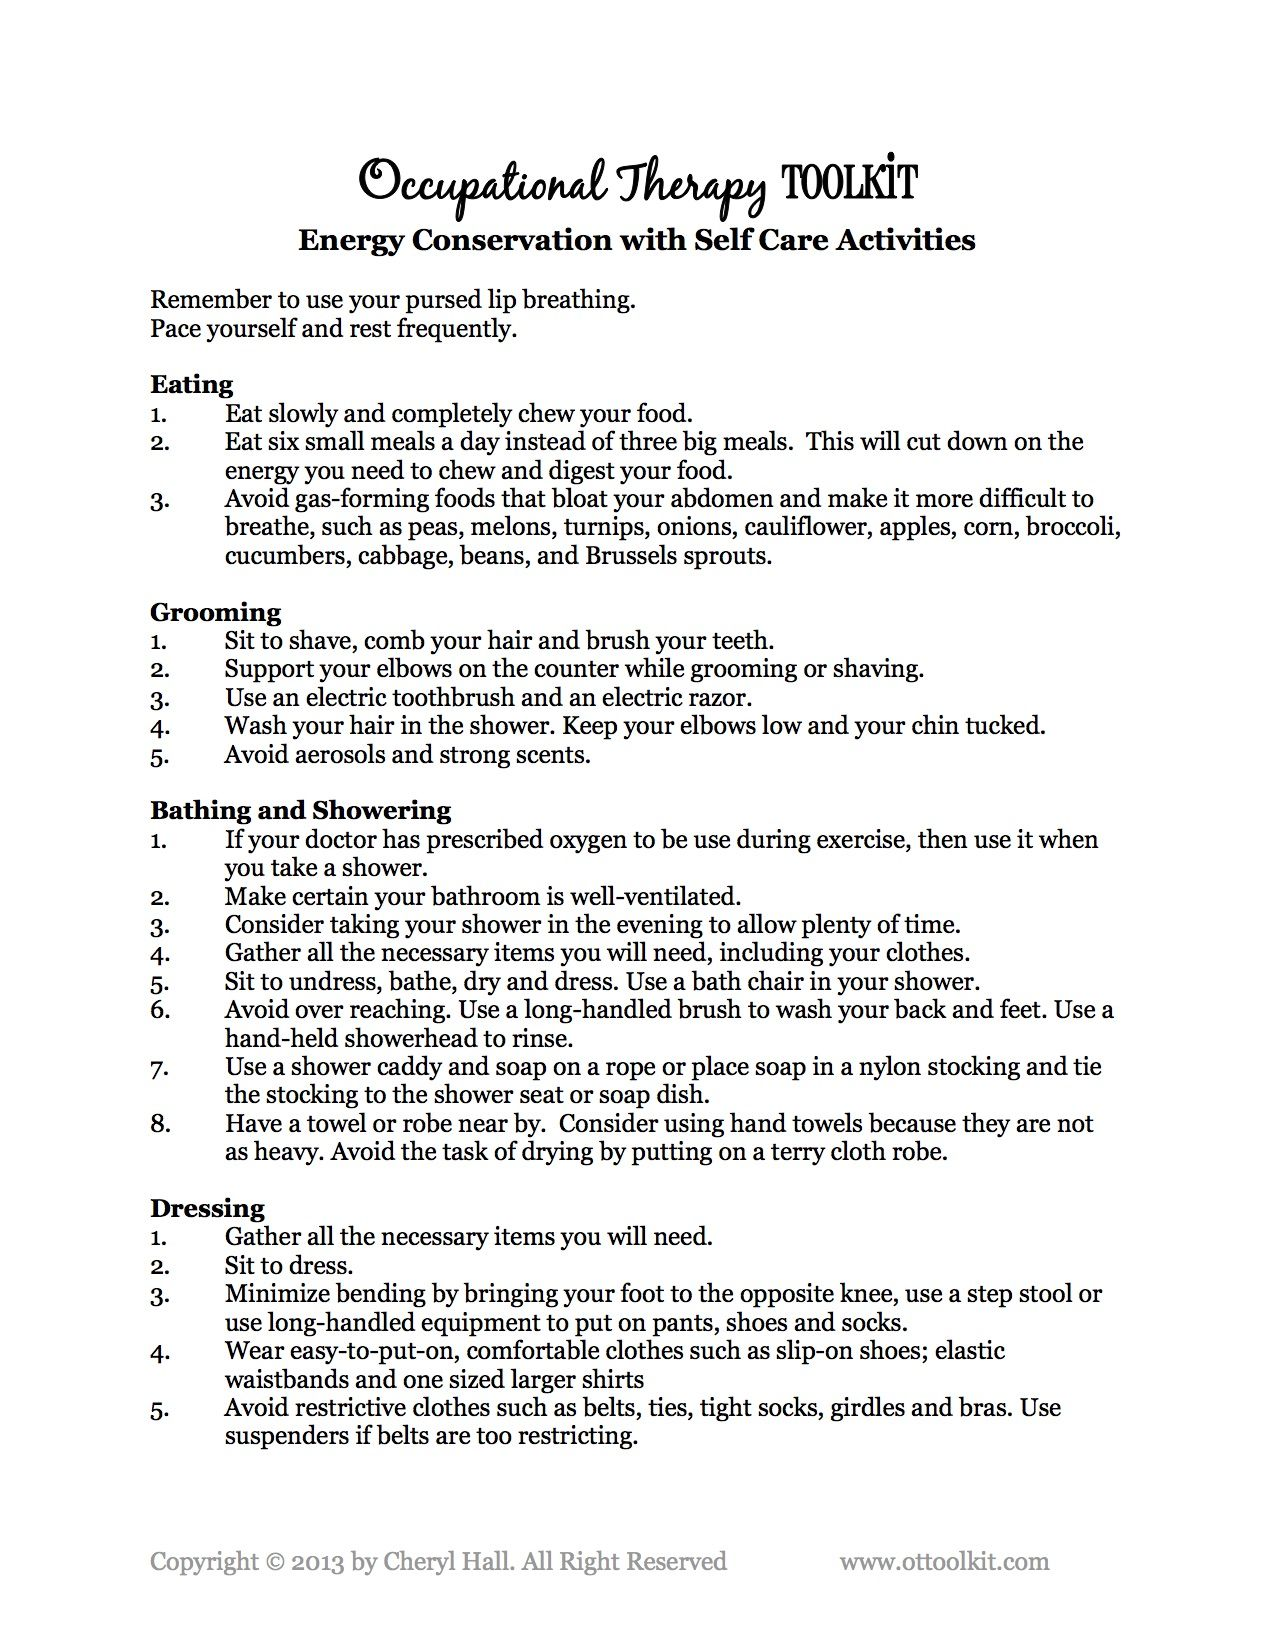 Saving Energy With Self Care Activities